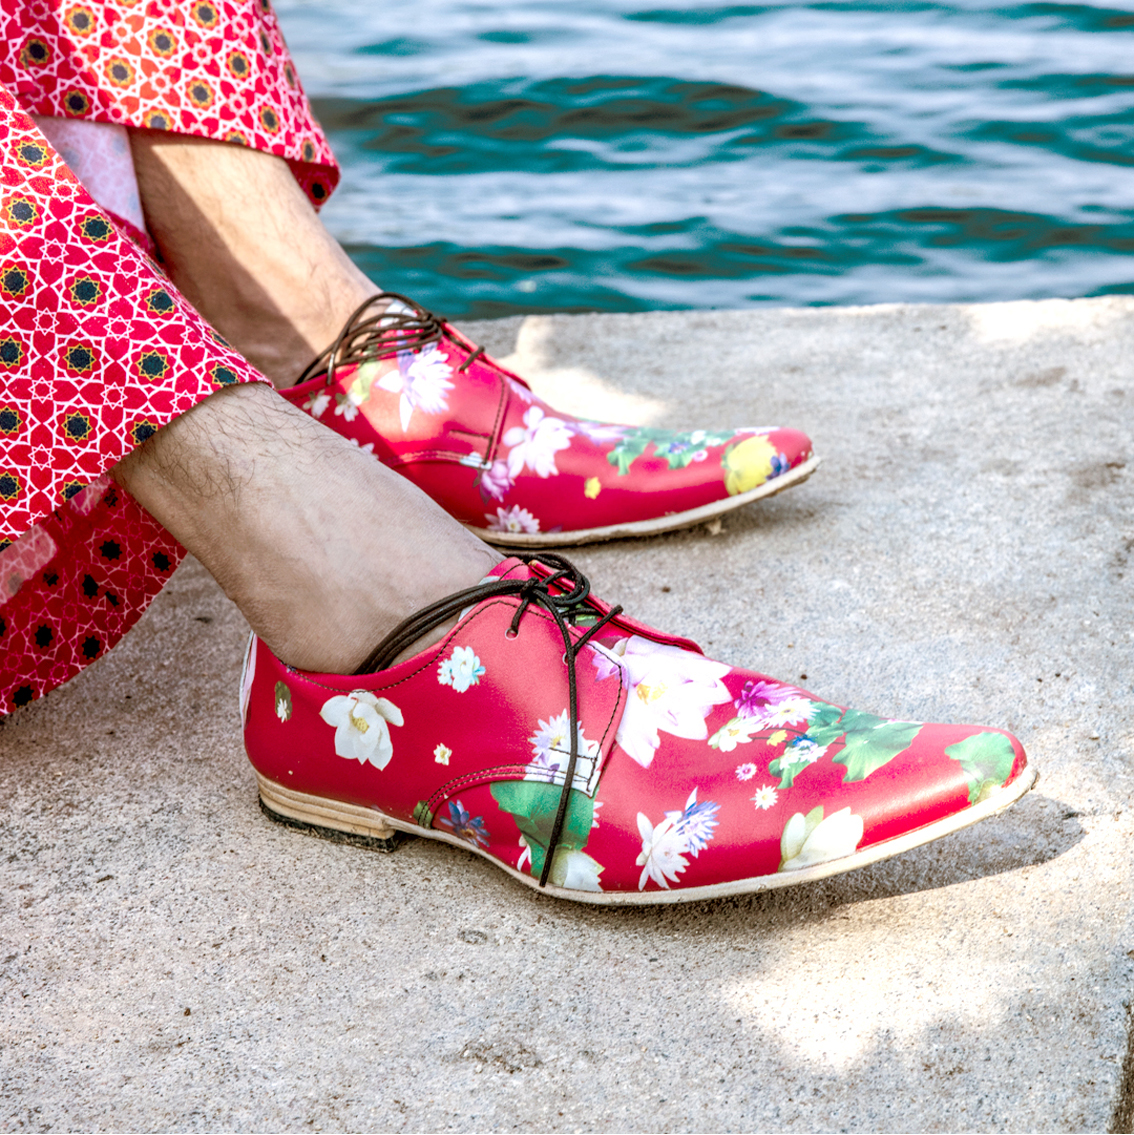 Red Lotus Handcrafted Leather Shoes